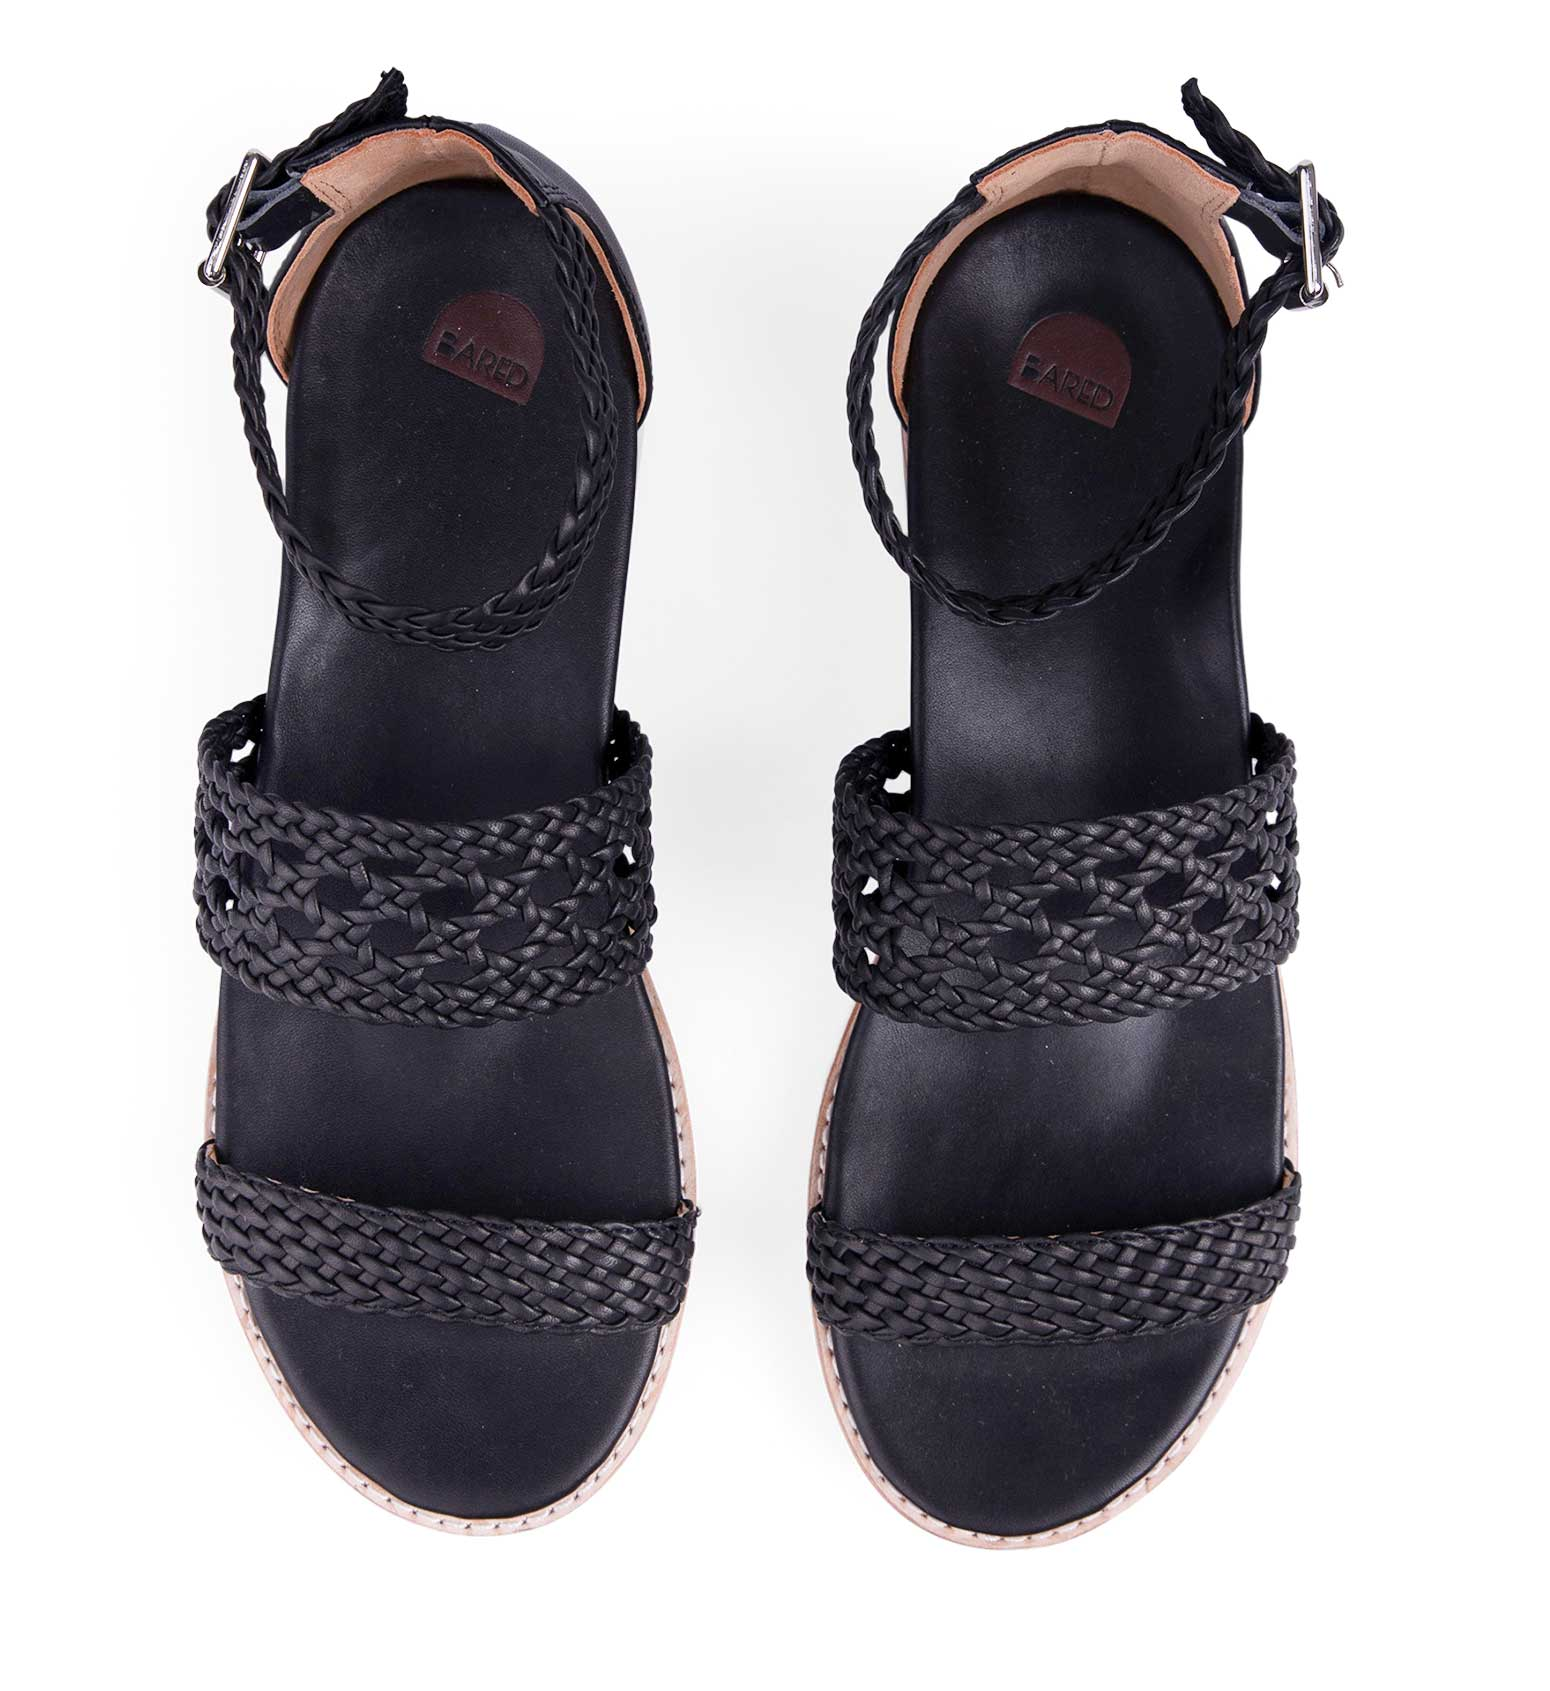 919cebee50 Bared Shoes: A revolution in footwear. Men's and women's shoes designed by  a podiatrist.